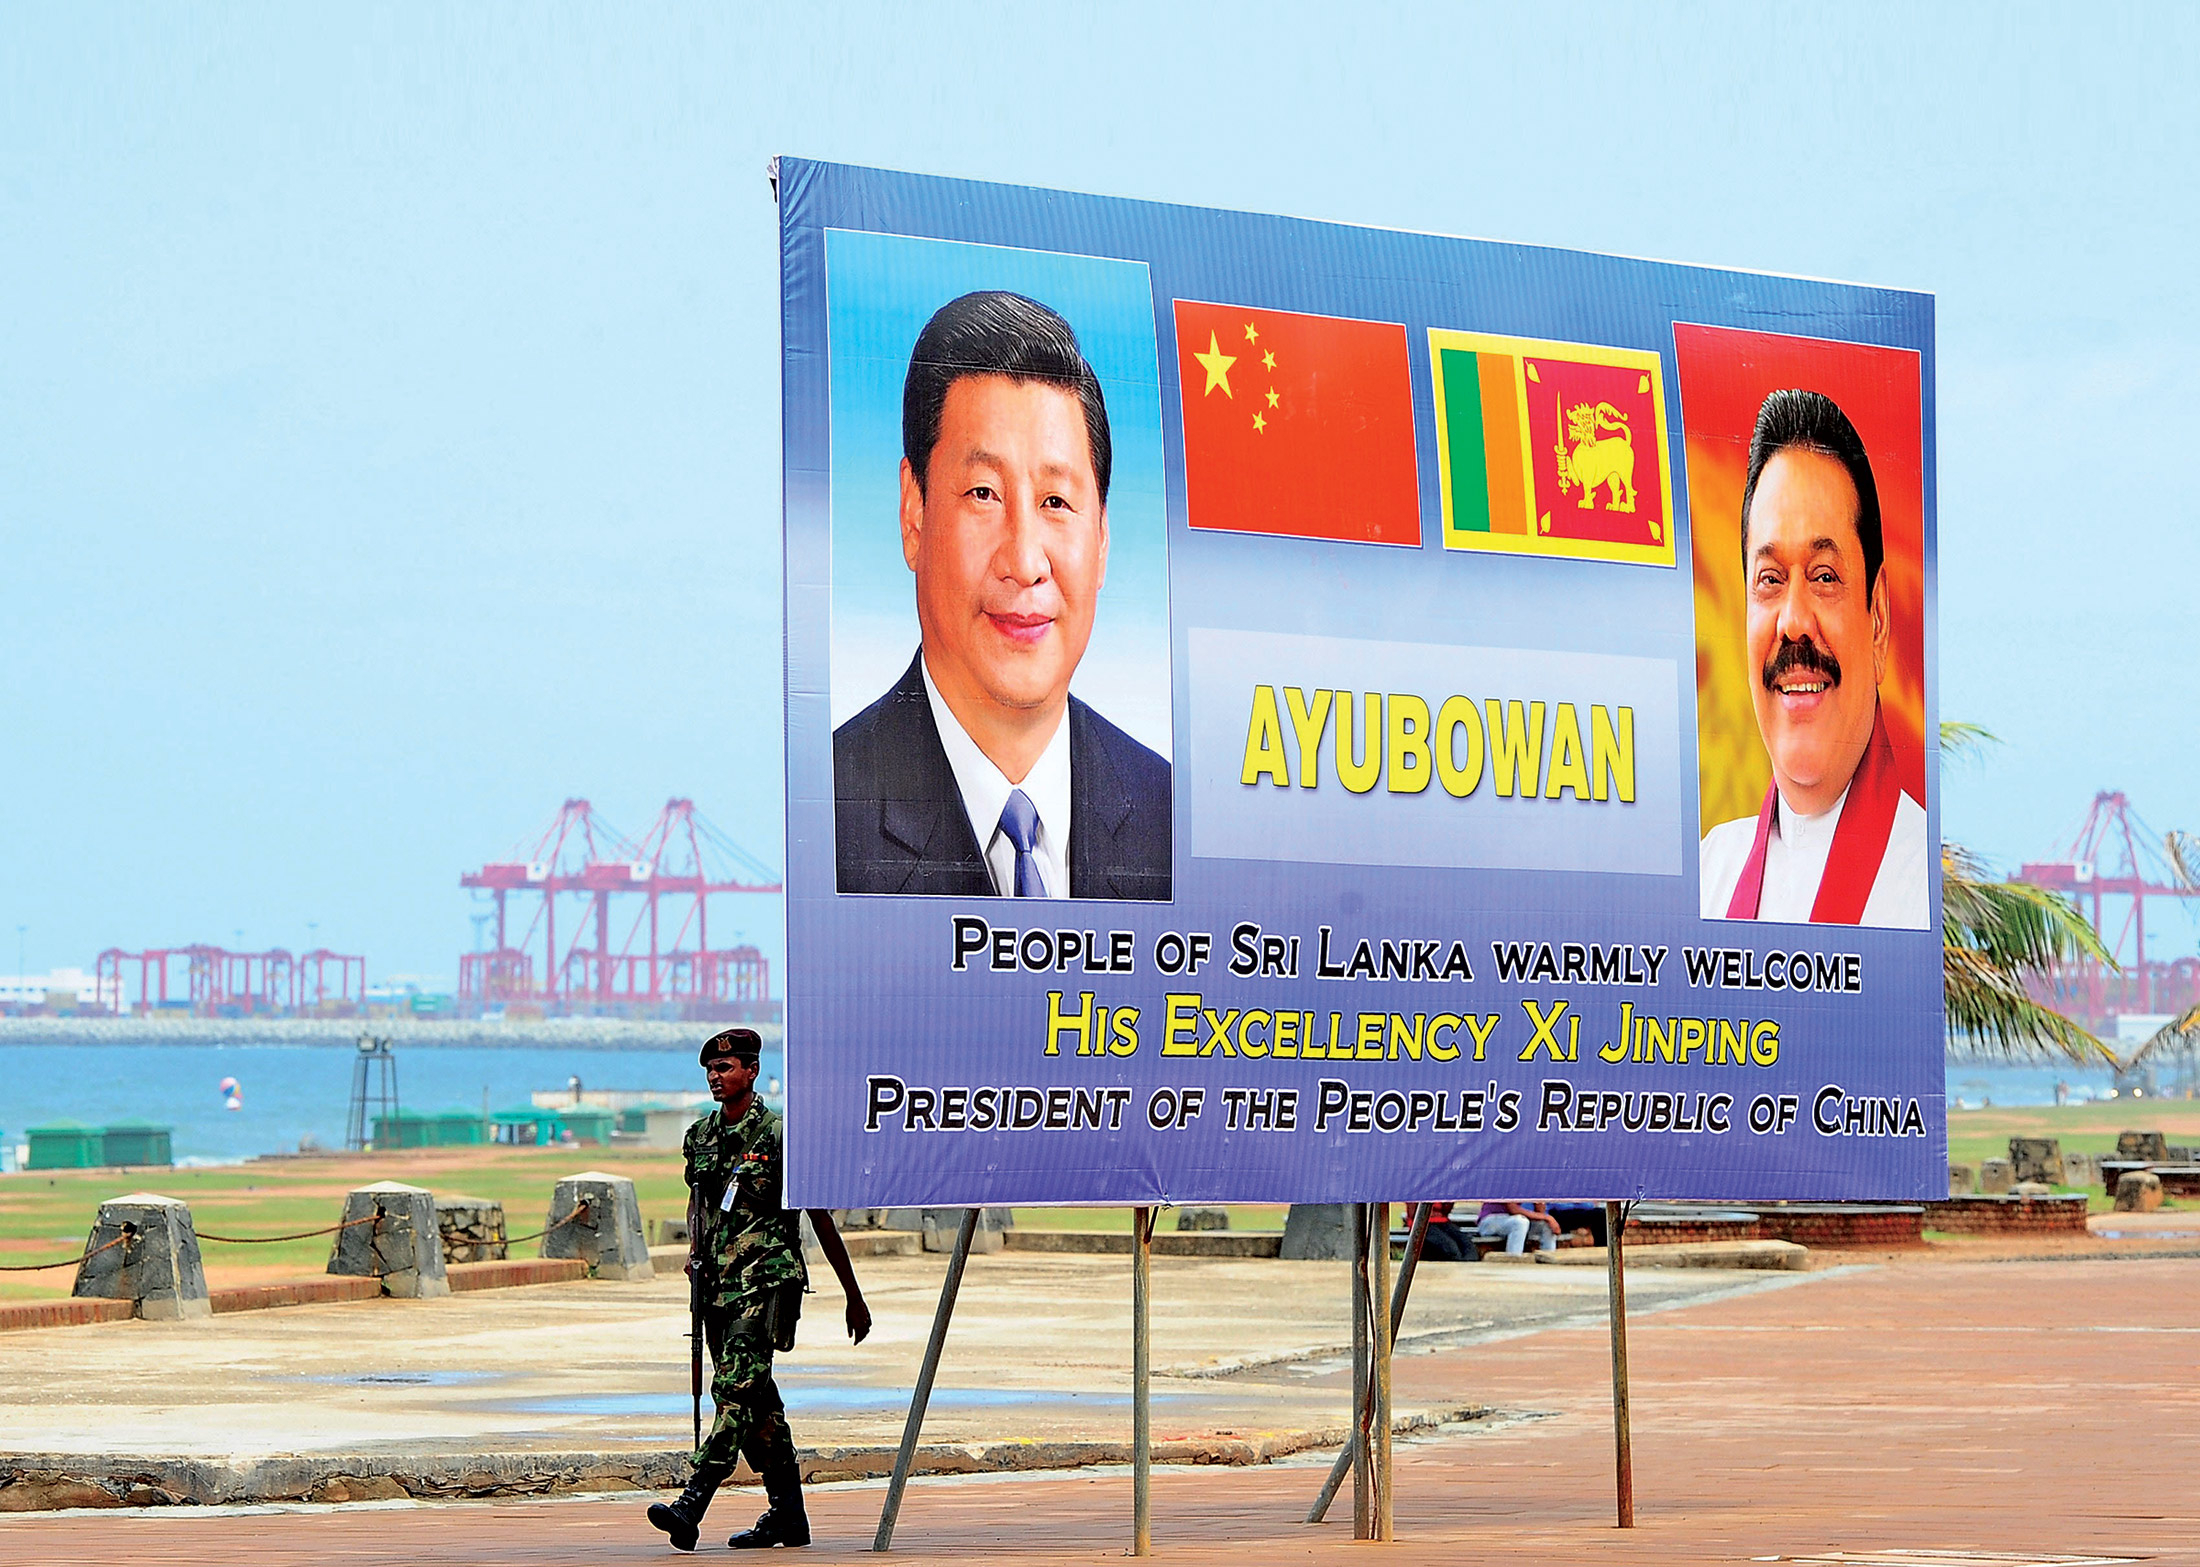 A poster in Sri Lanka welcomes China's president after a succesful development project